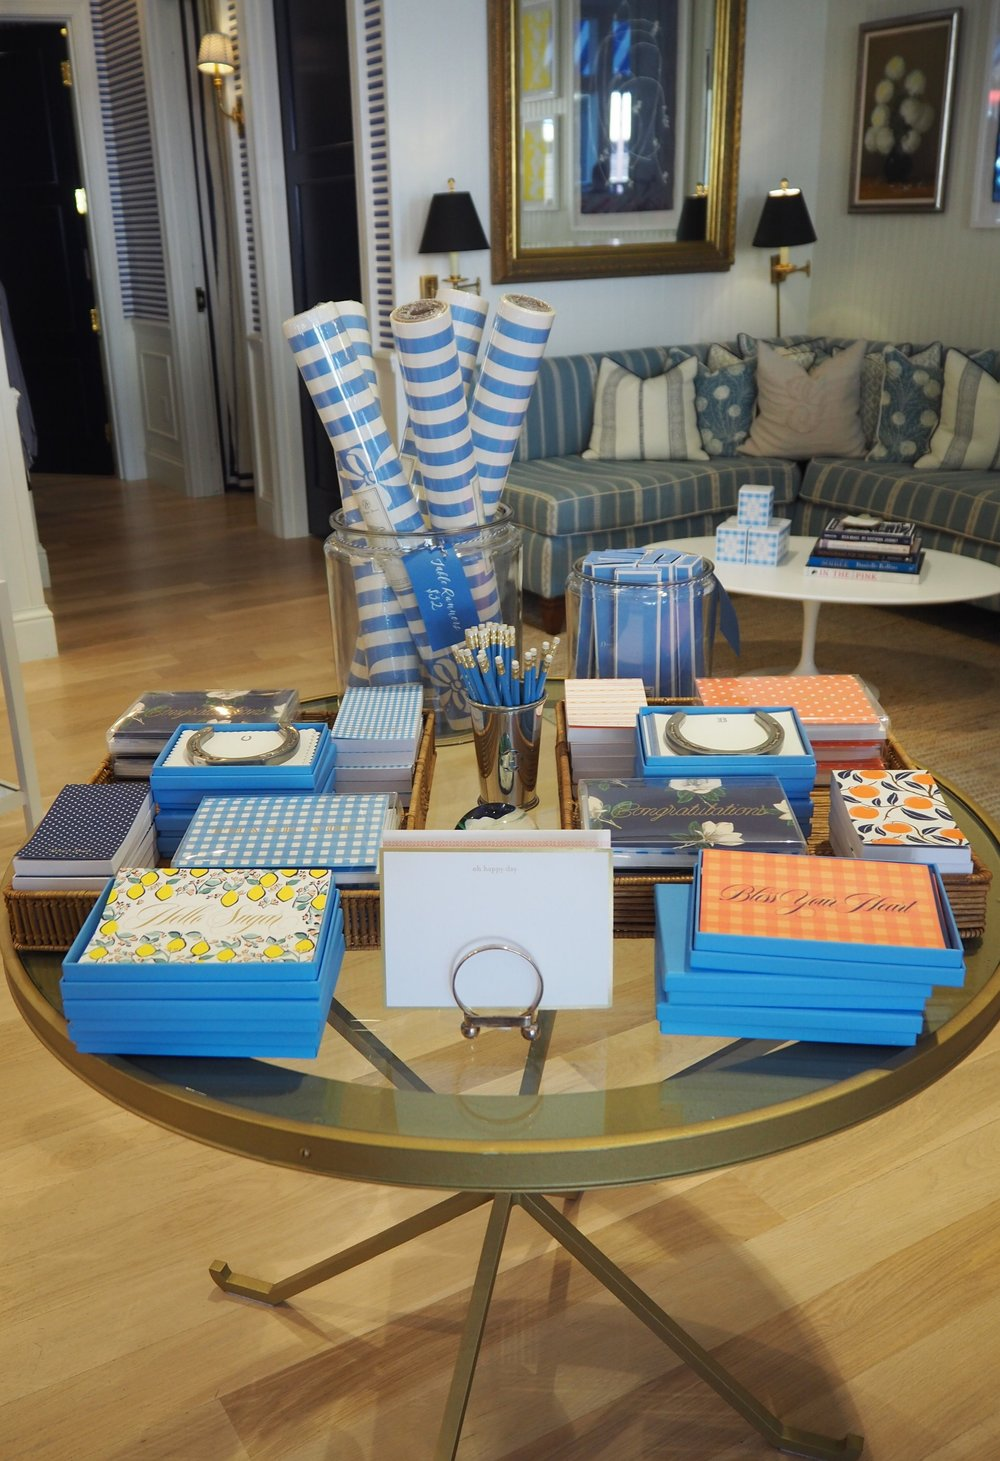 Reese Witherspoon's Draper James Nashville store. Filled with tones of southern charm. Make sure y'all visit.